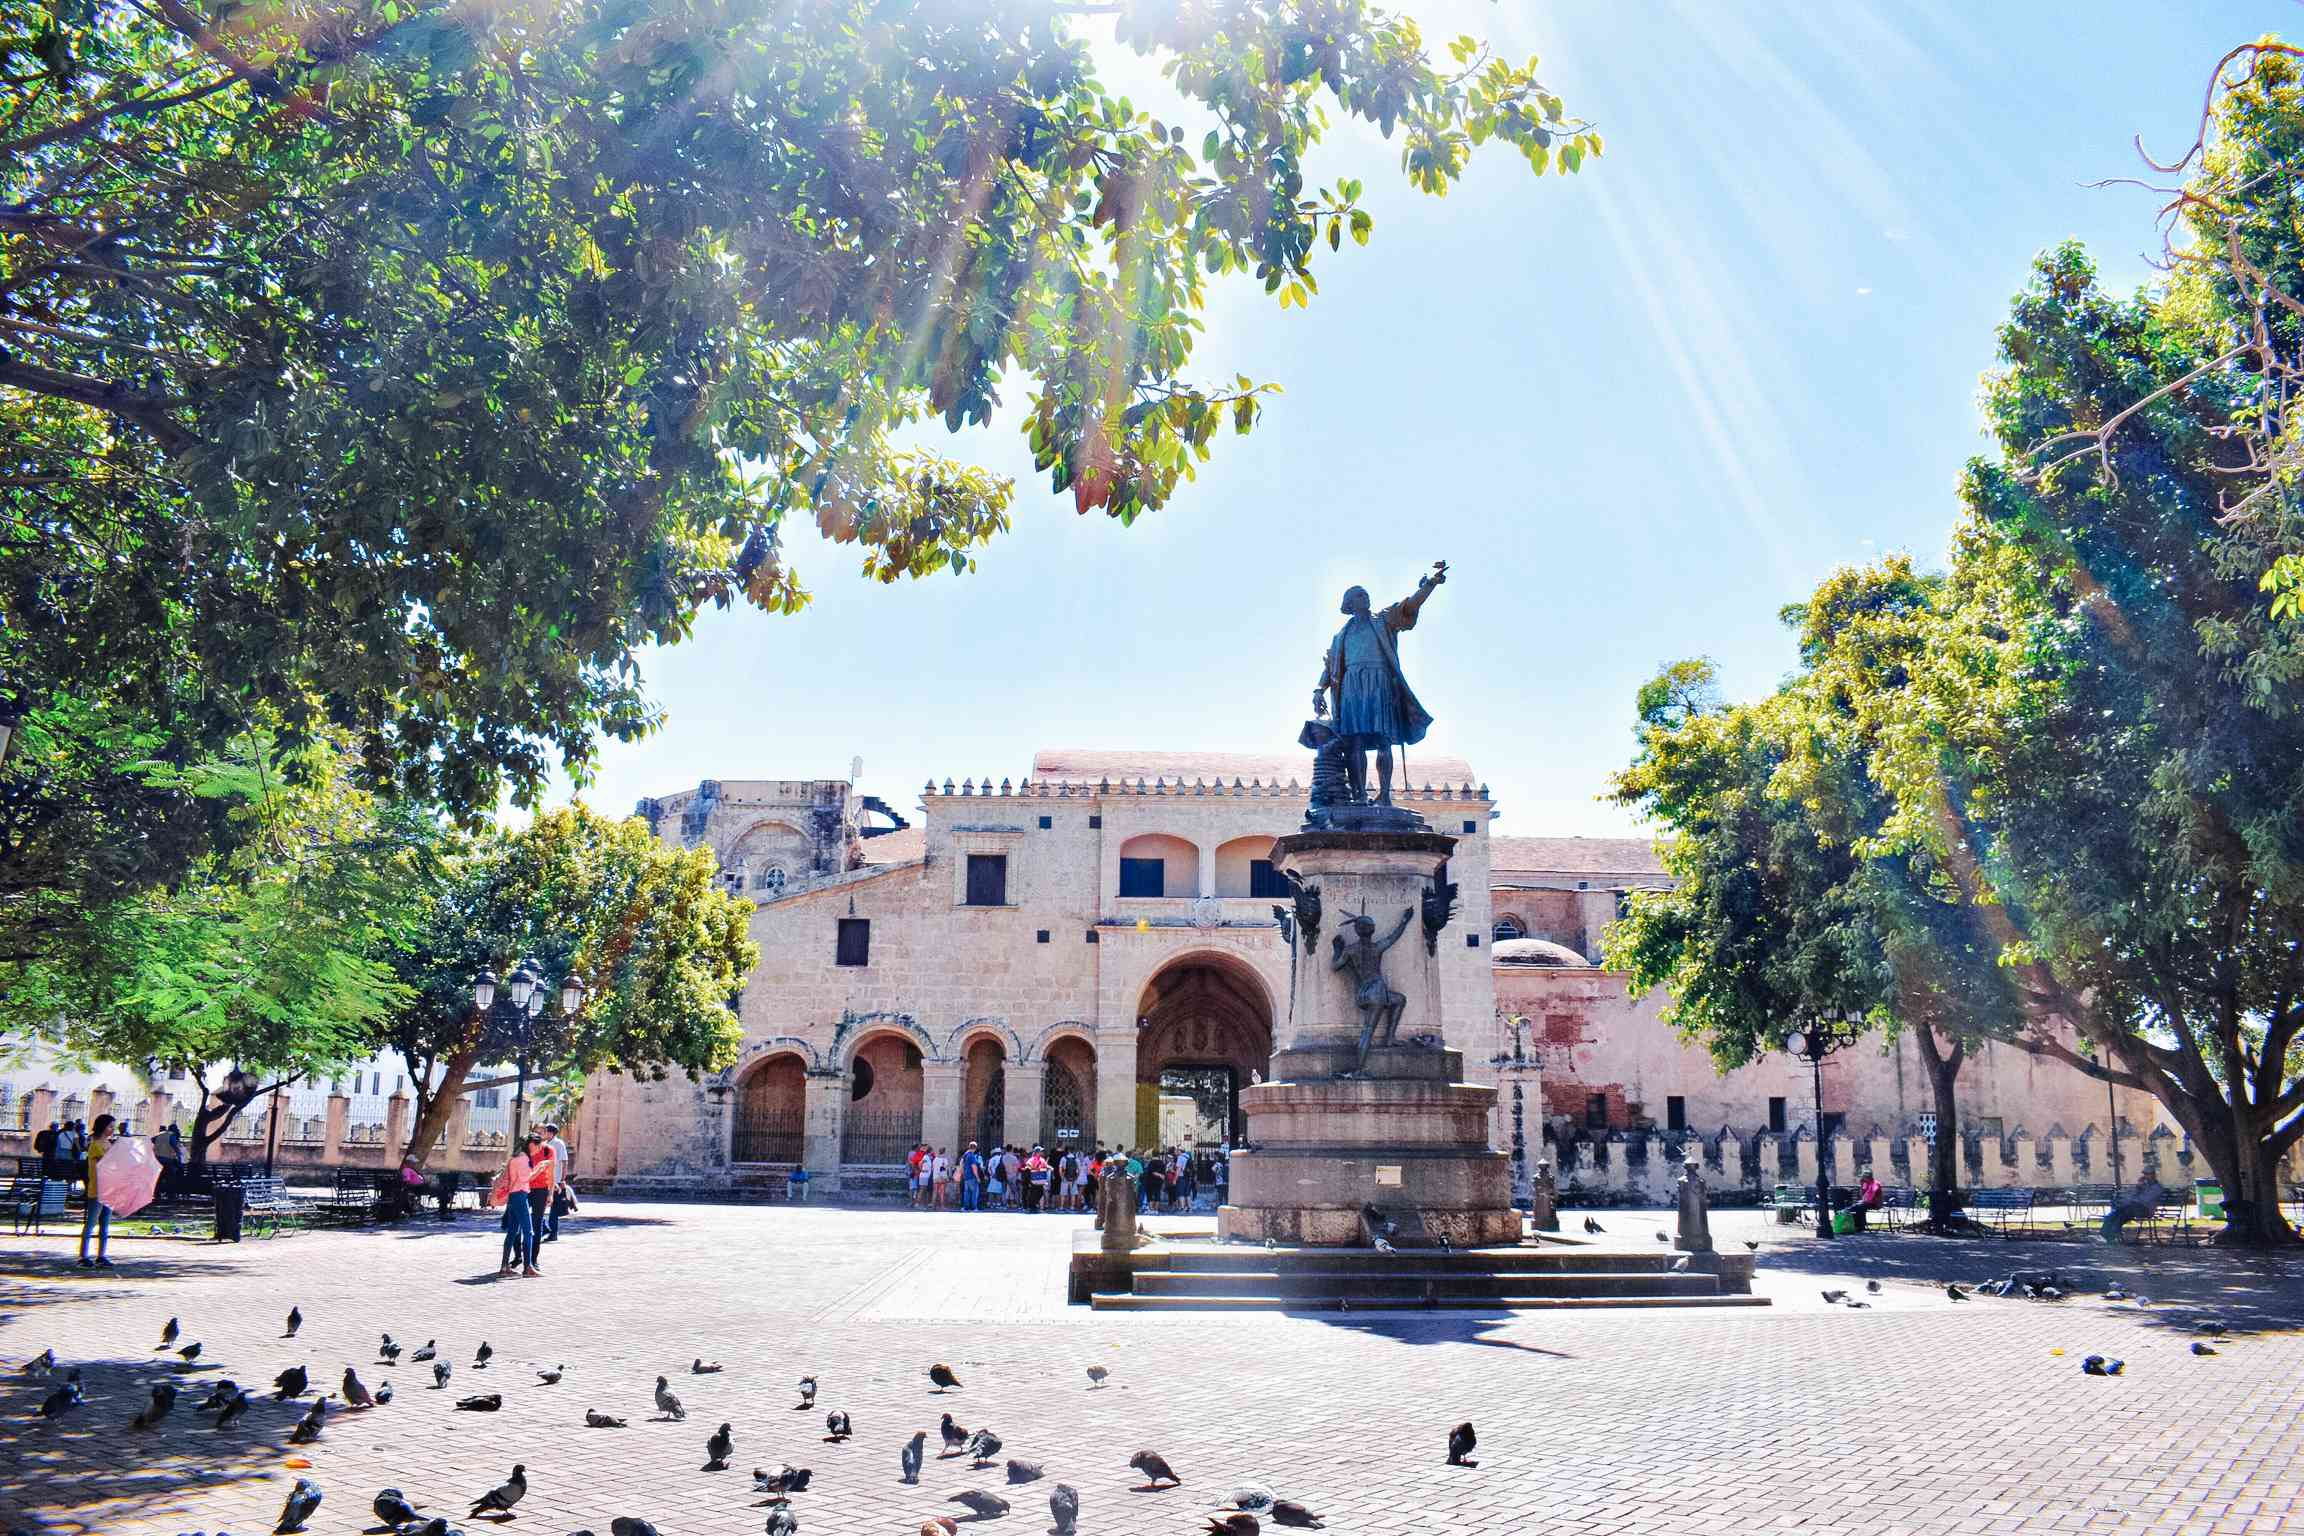 Sun shining down in the main square of Parque colon of old buildings and a statue